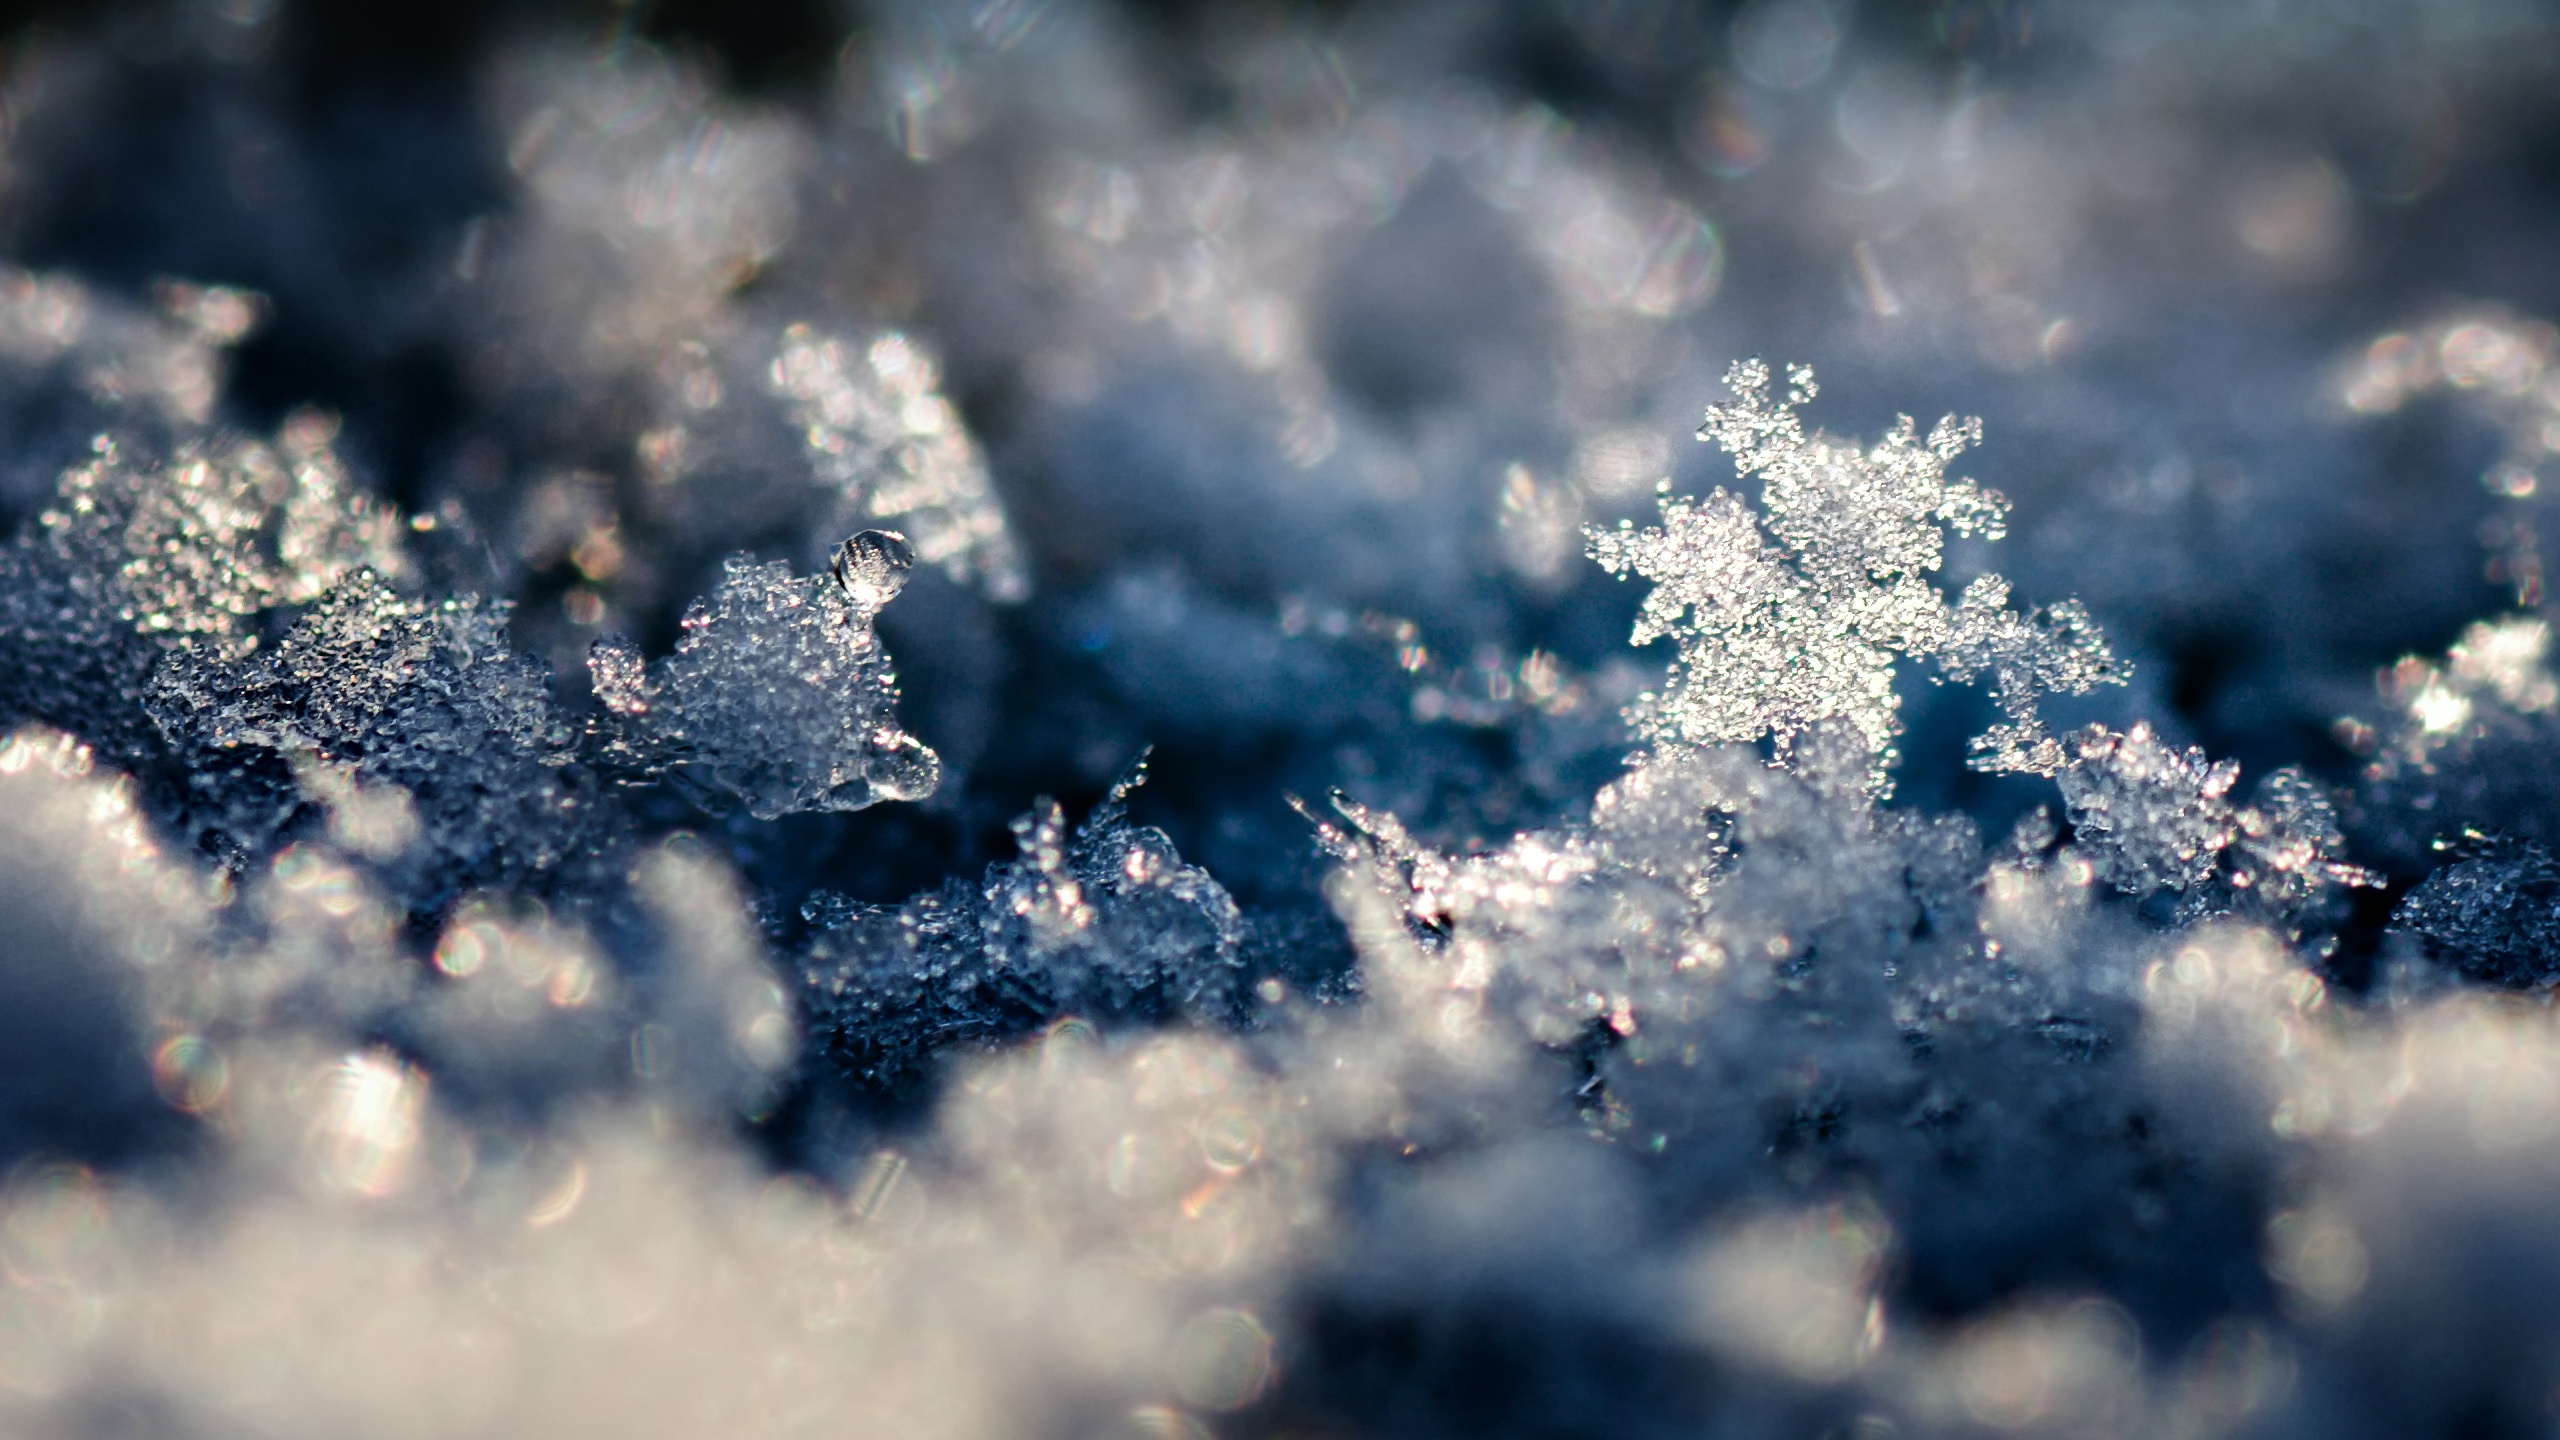 Hd wallpaper pc tumblr - 2560x1440 Snow Crystal Landscape Desktop Pc And Mac Wallpaper